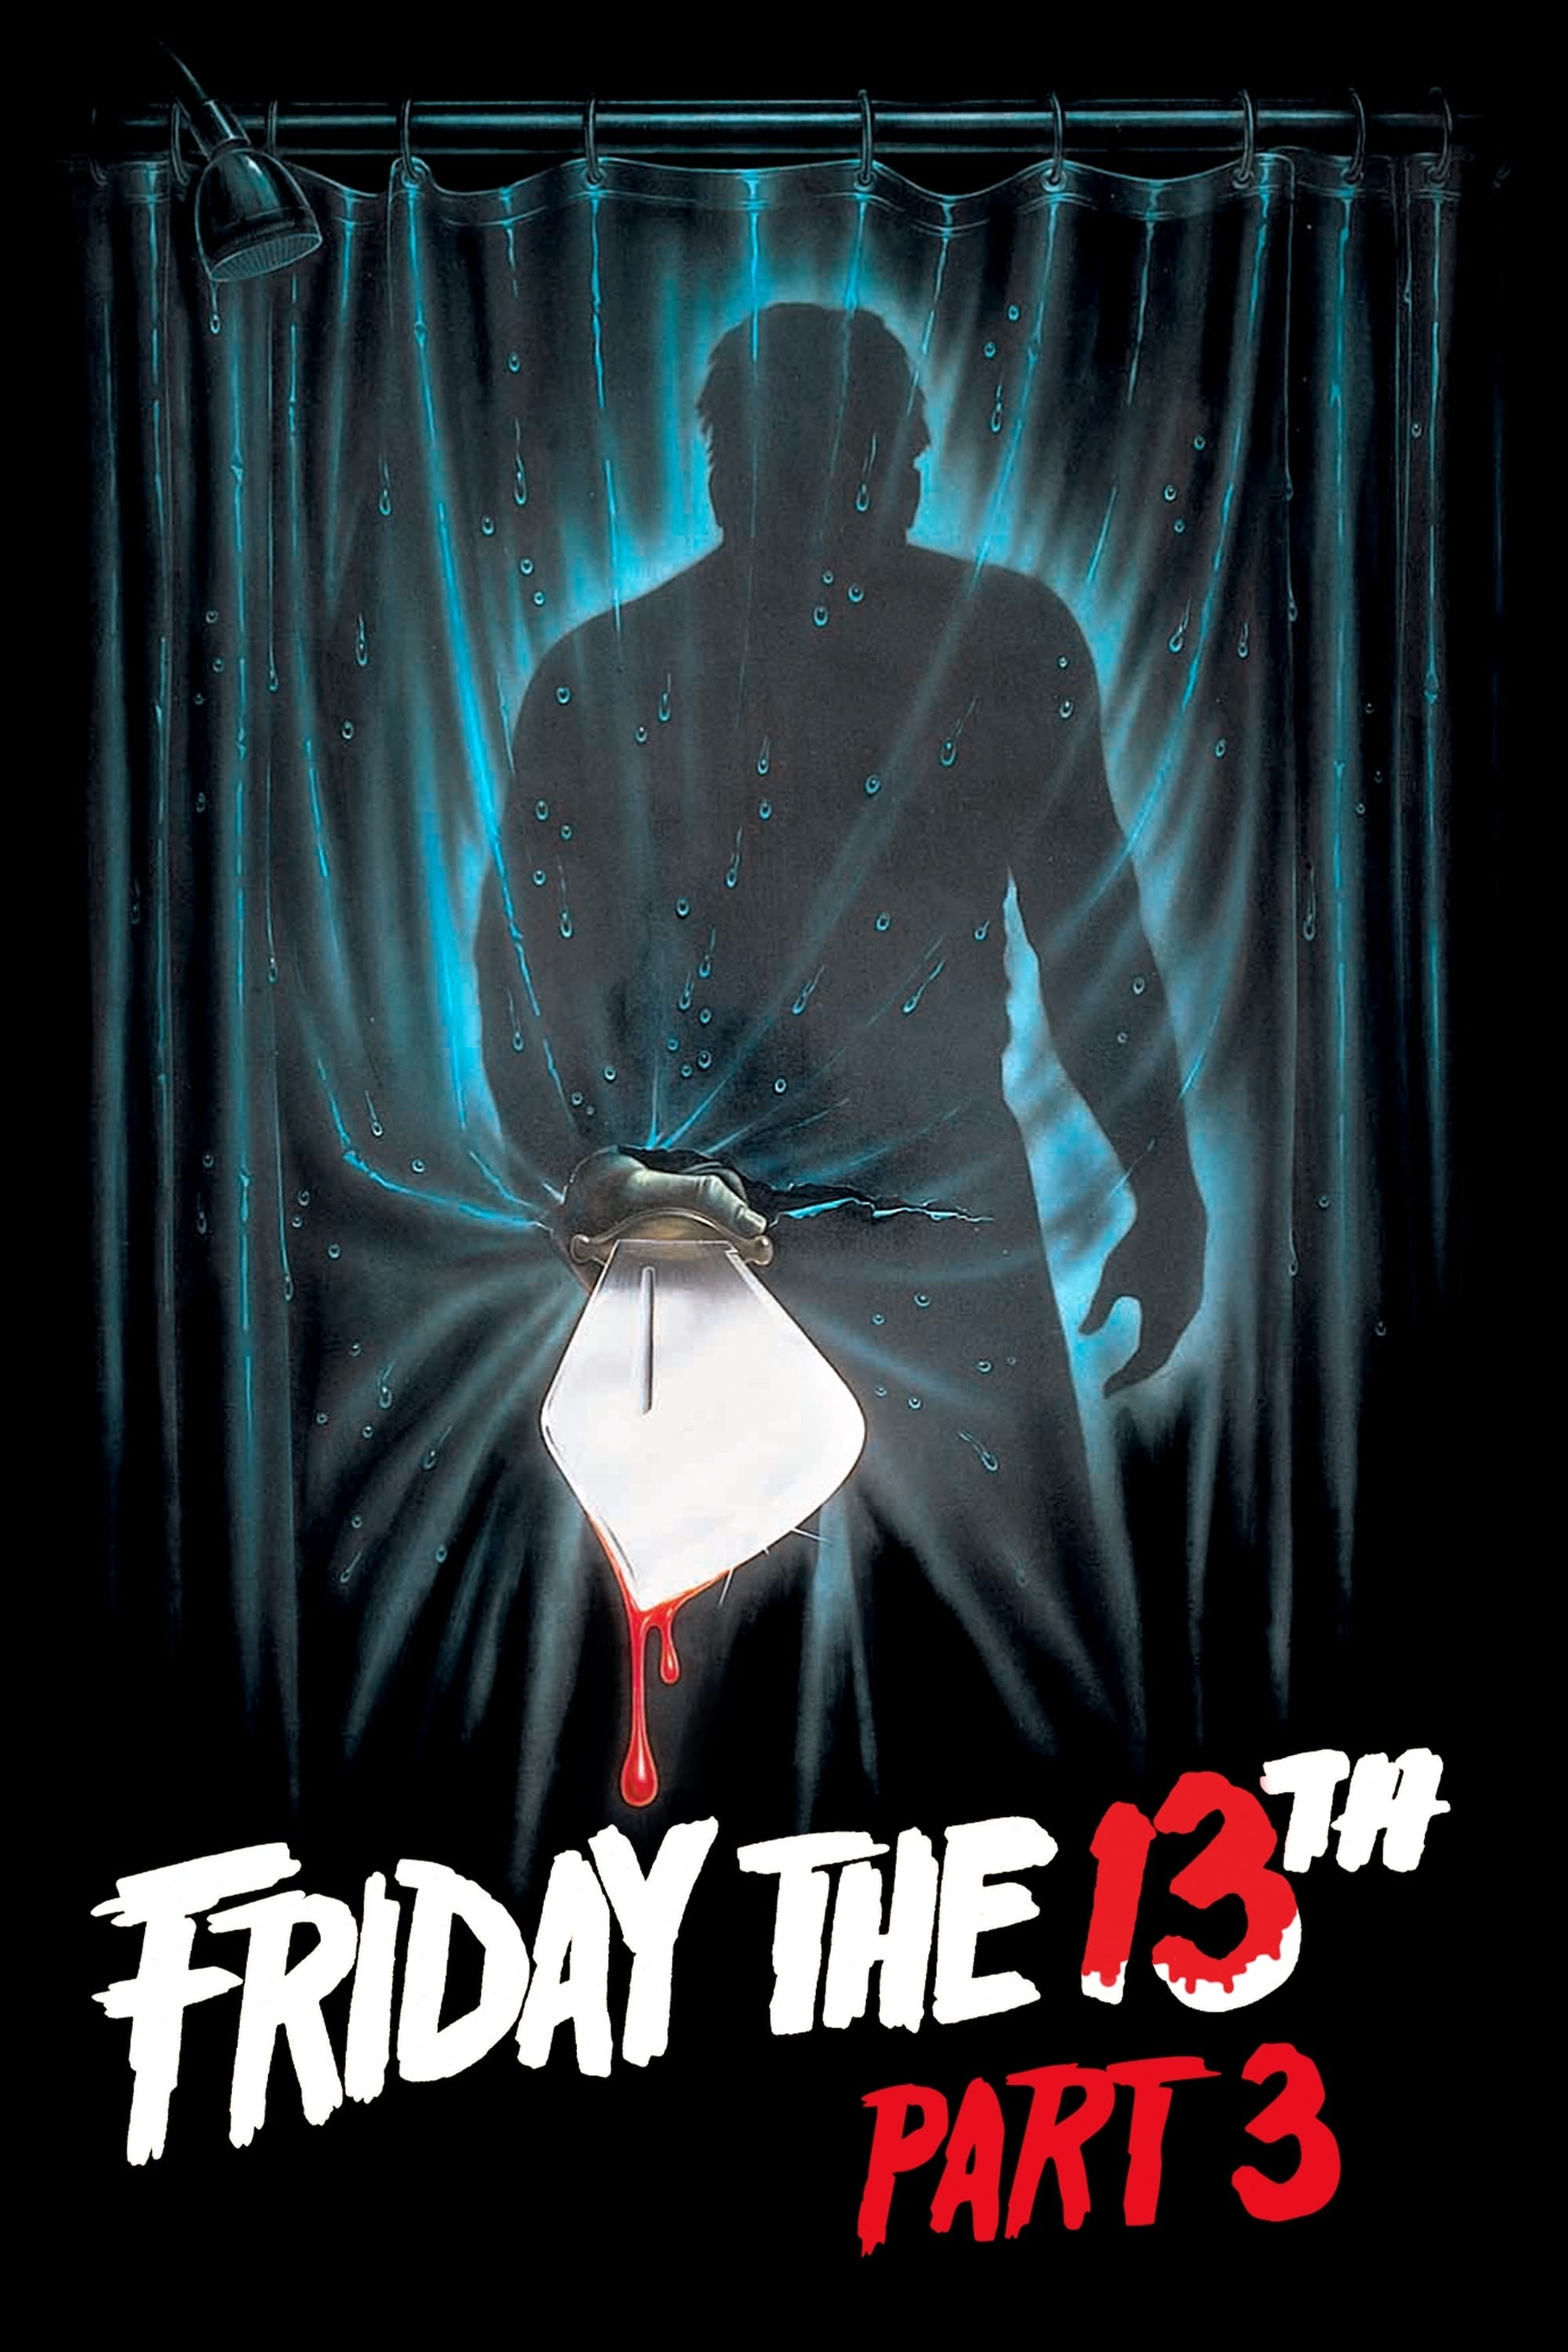 Friday the 13th Part III (1982) Poster